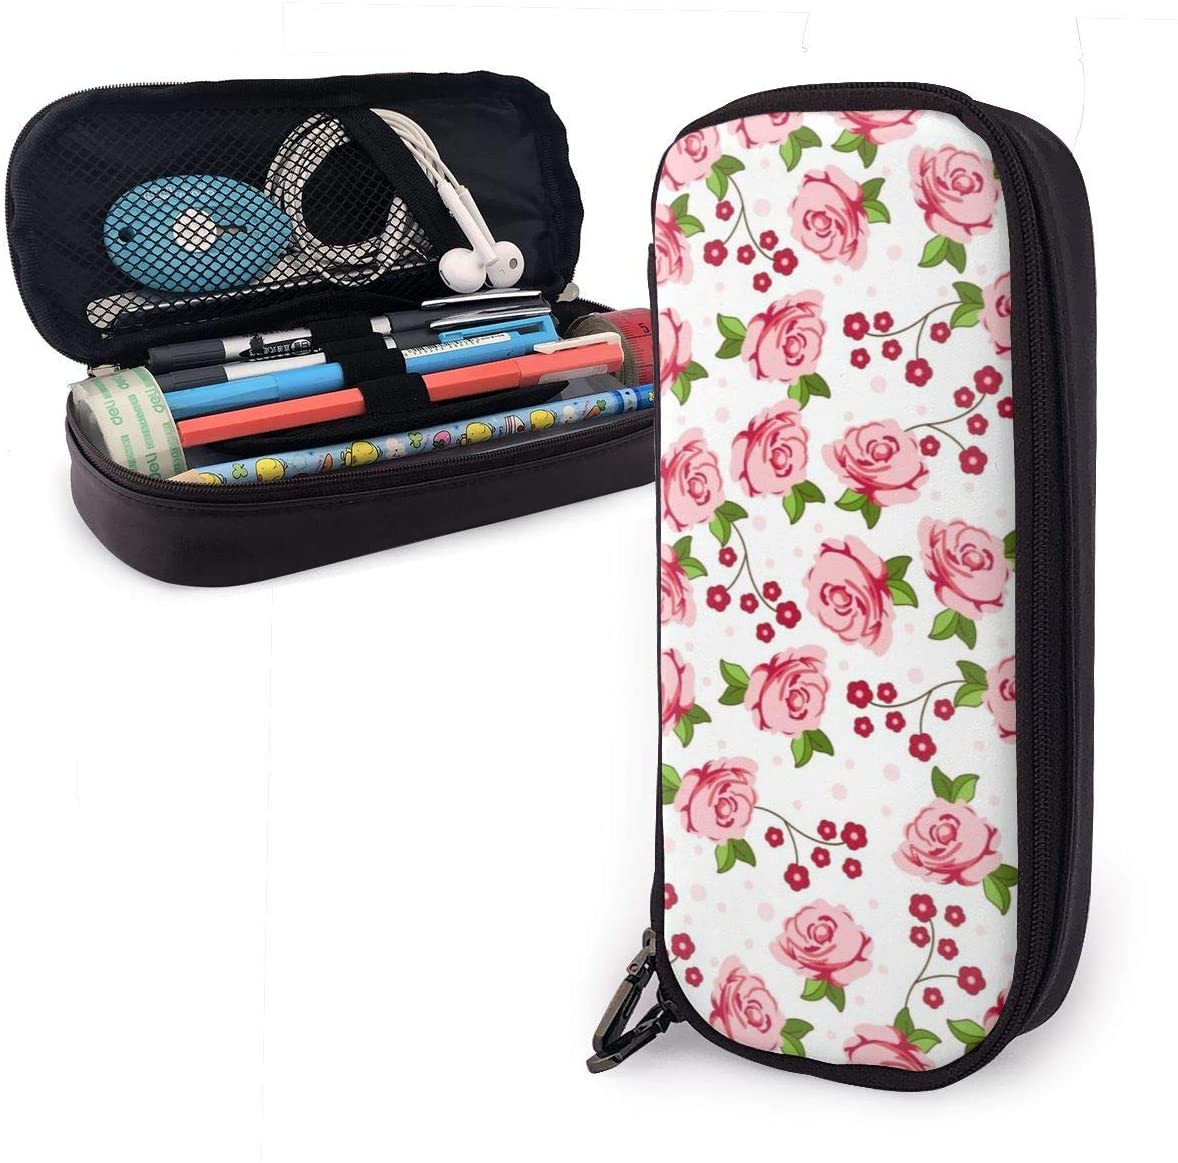 Polyester Pencils Holder with Zipper One Pocket Pencil Pouch Bag for Office Supply Accessories for Teen Student Kids Artist Pink Rose Flower Storage Pouch